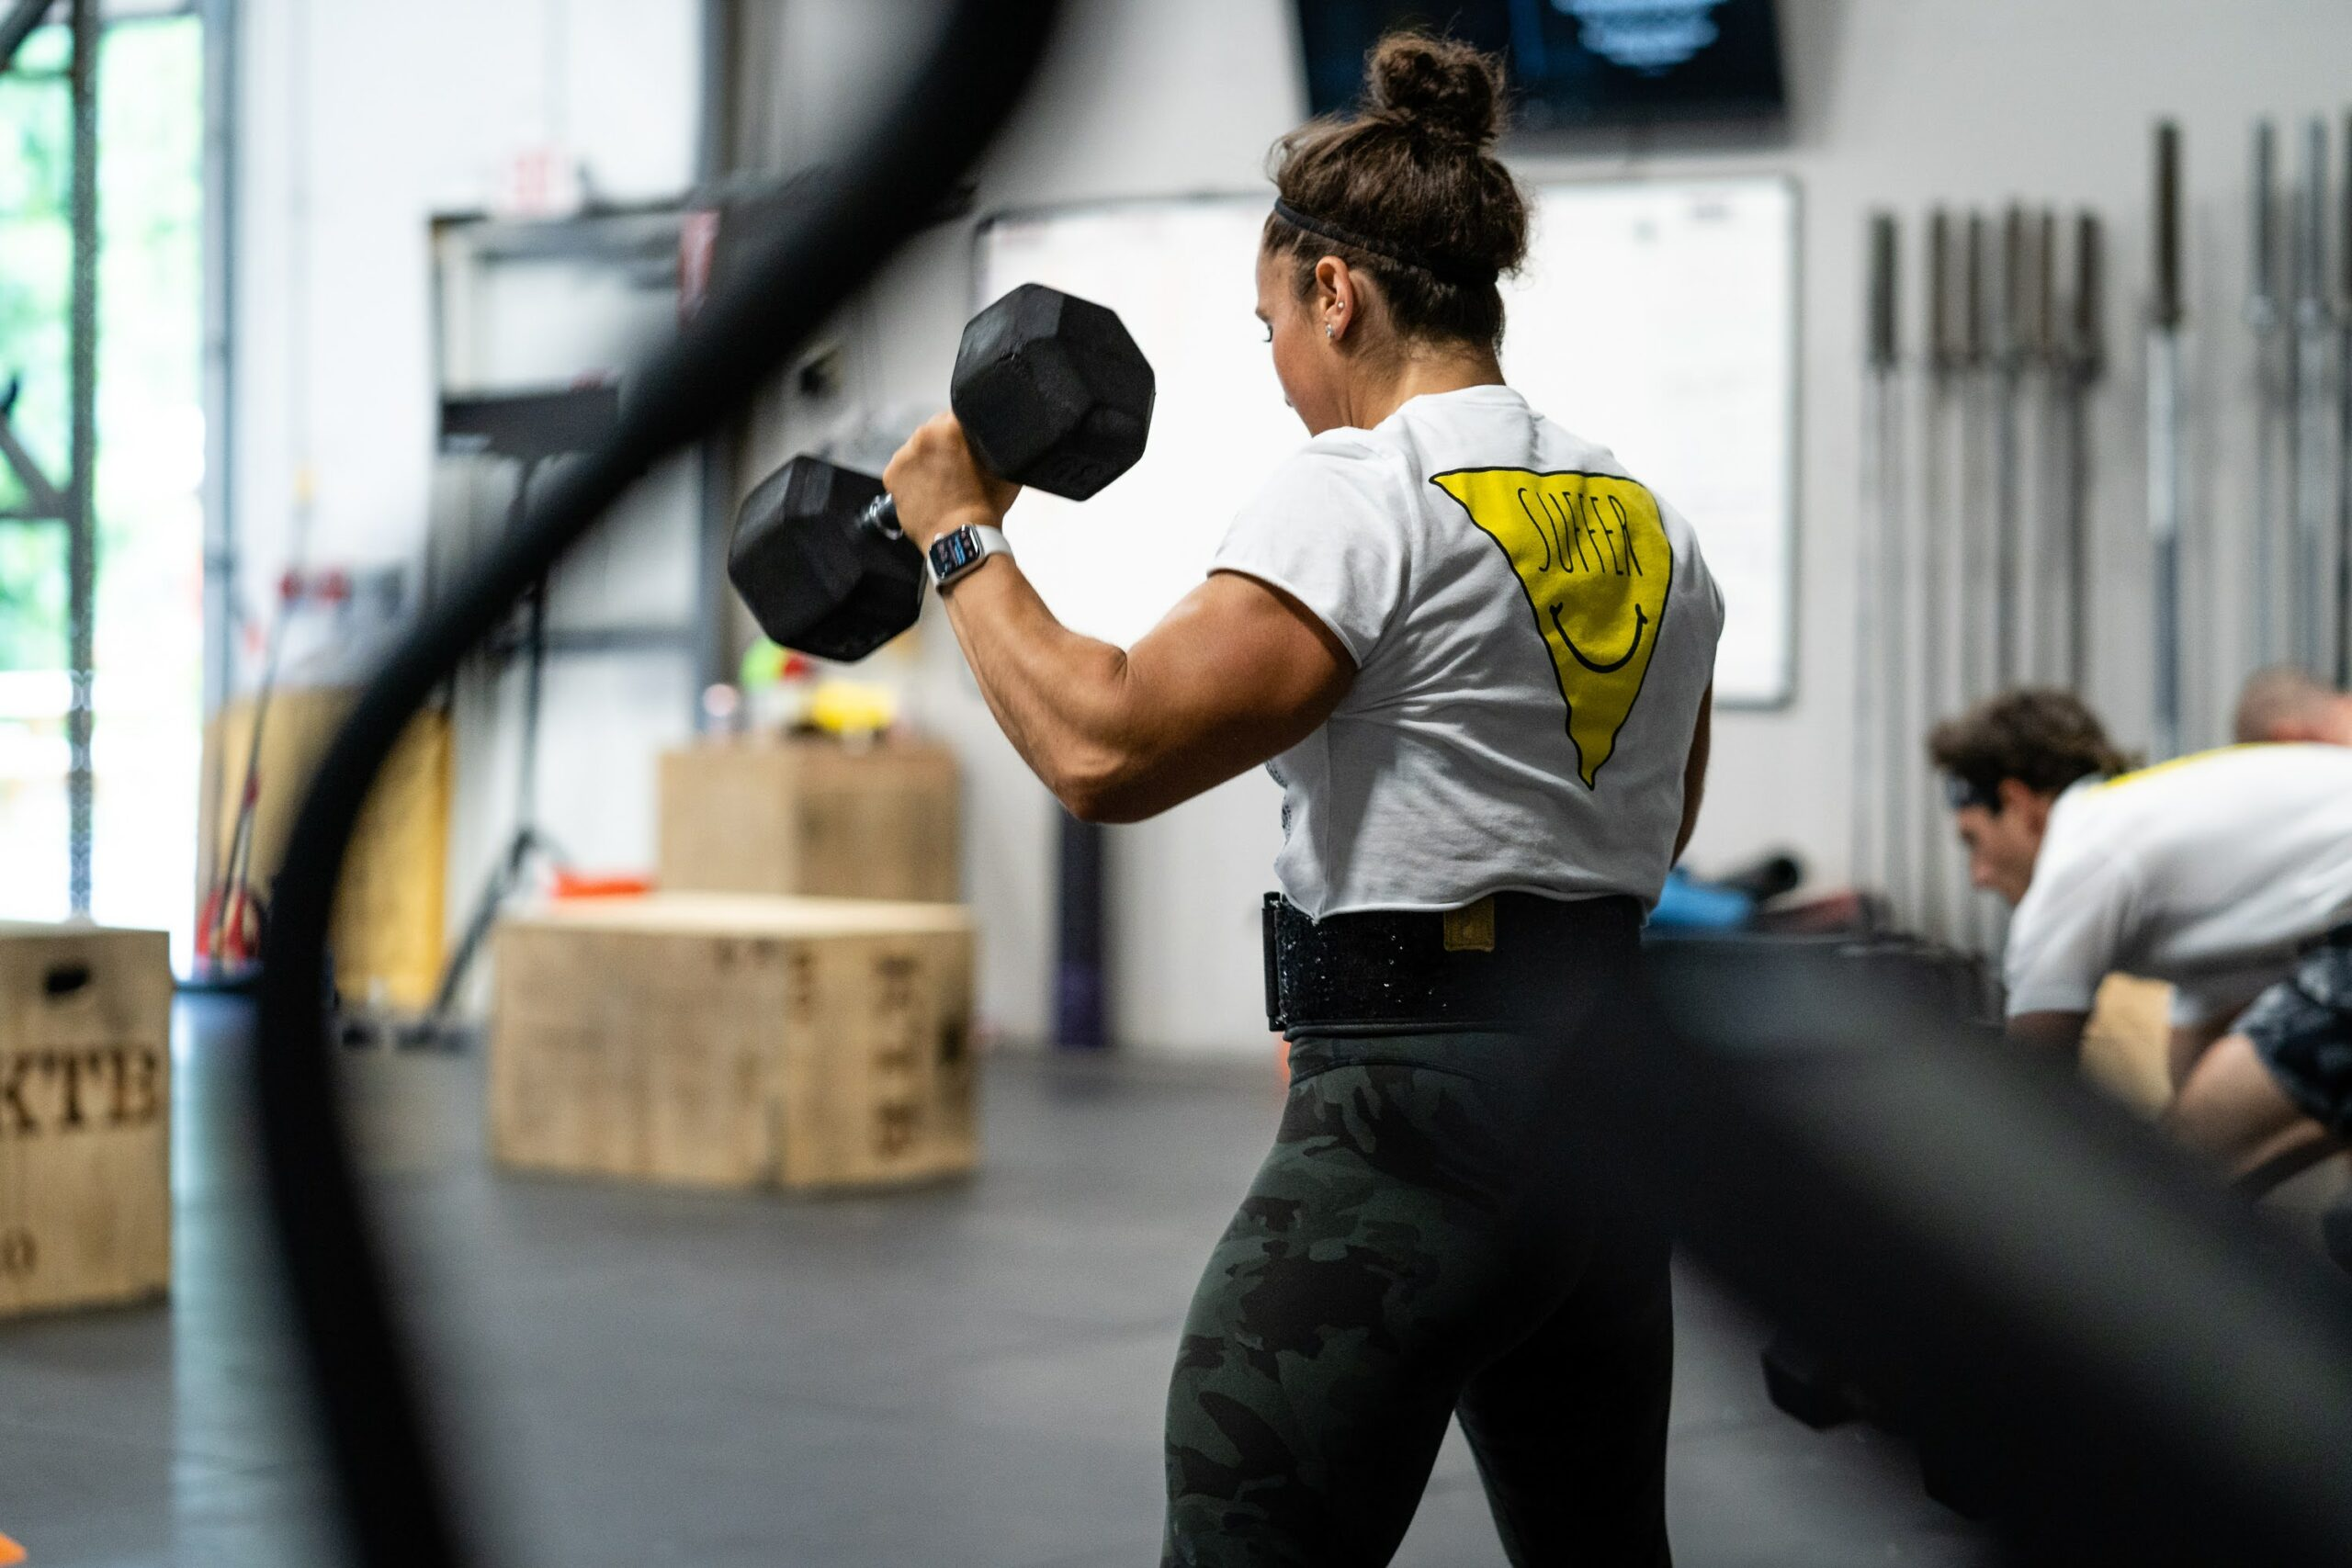 Turn Any Crossfit Workout Into The Best Workout For You